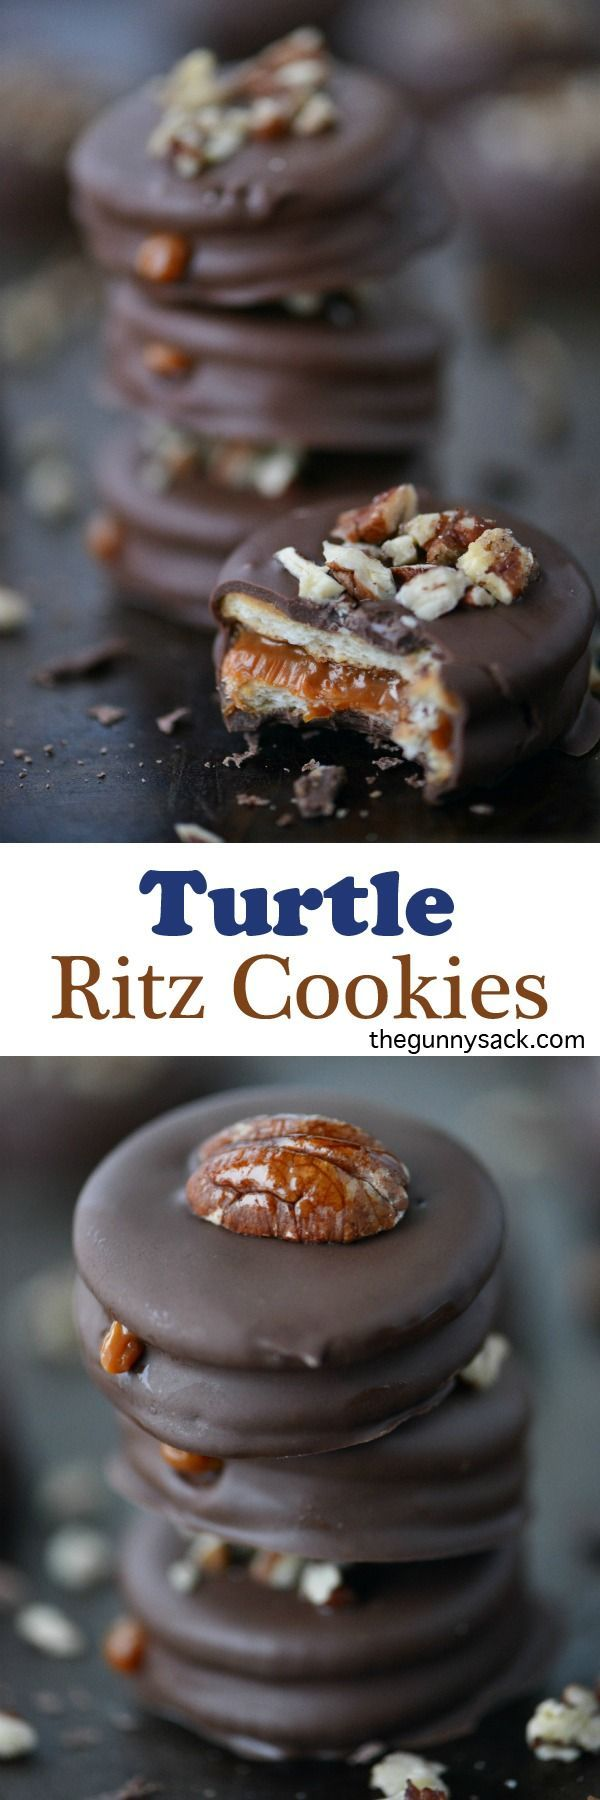 Turtle Ritz Cookies have a delicious layer of creamy caramel inside! Try them in a